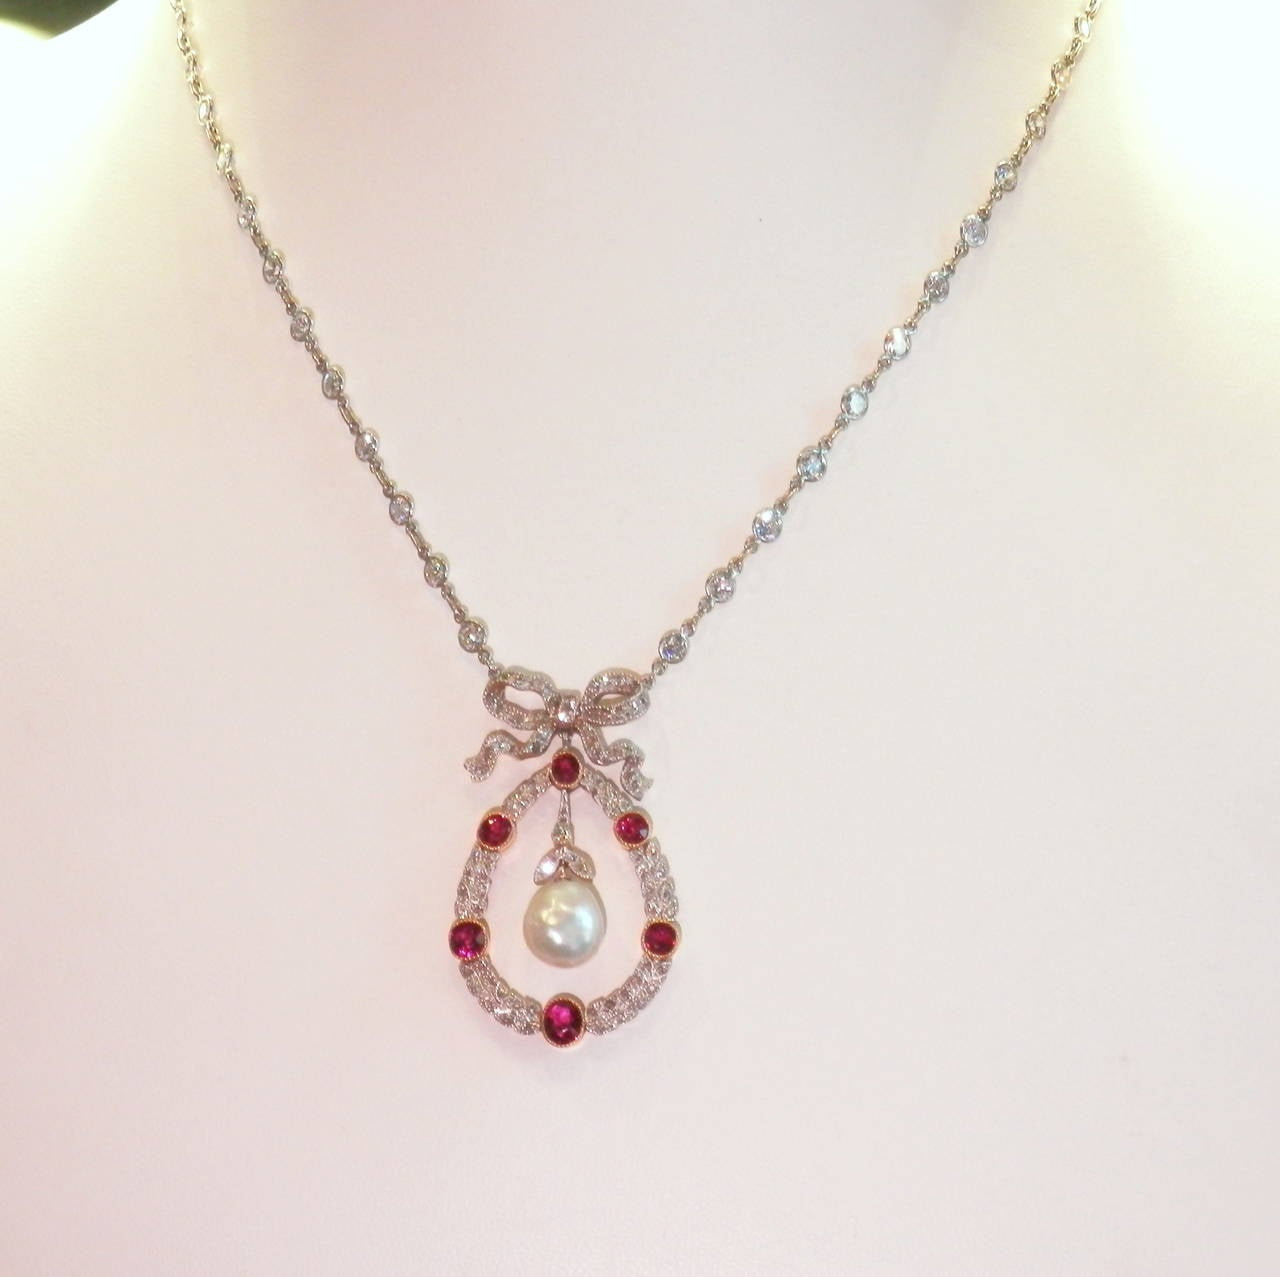 Platinum on gold pendant necklace with 1.50 cts. of natural unheated Burma rubies, 1.50 cts of diamonds and centering a natural 9.2 mm. pearl, the diamond chain in contemporary.